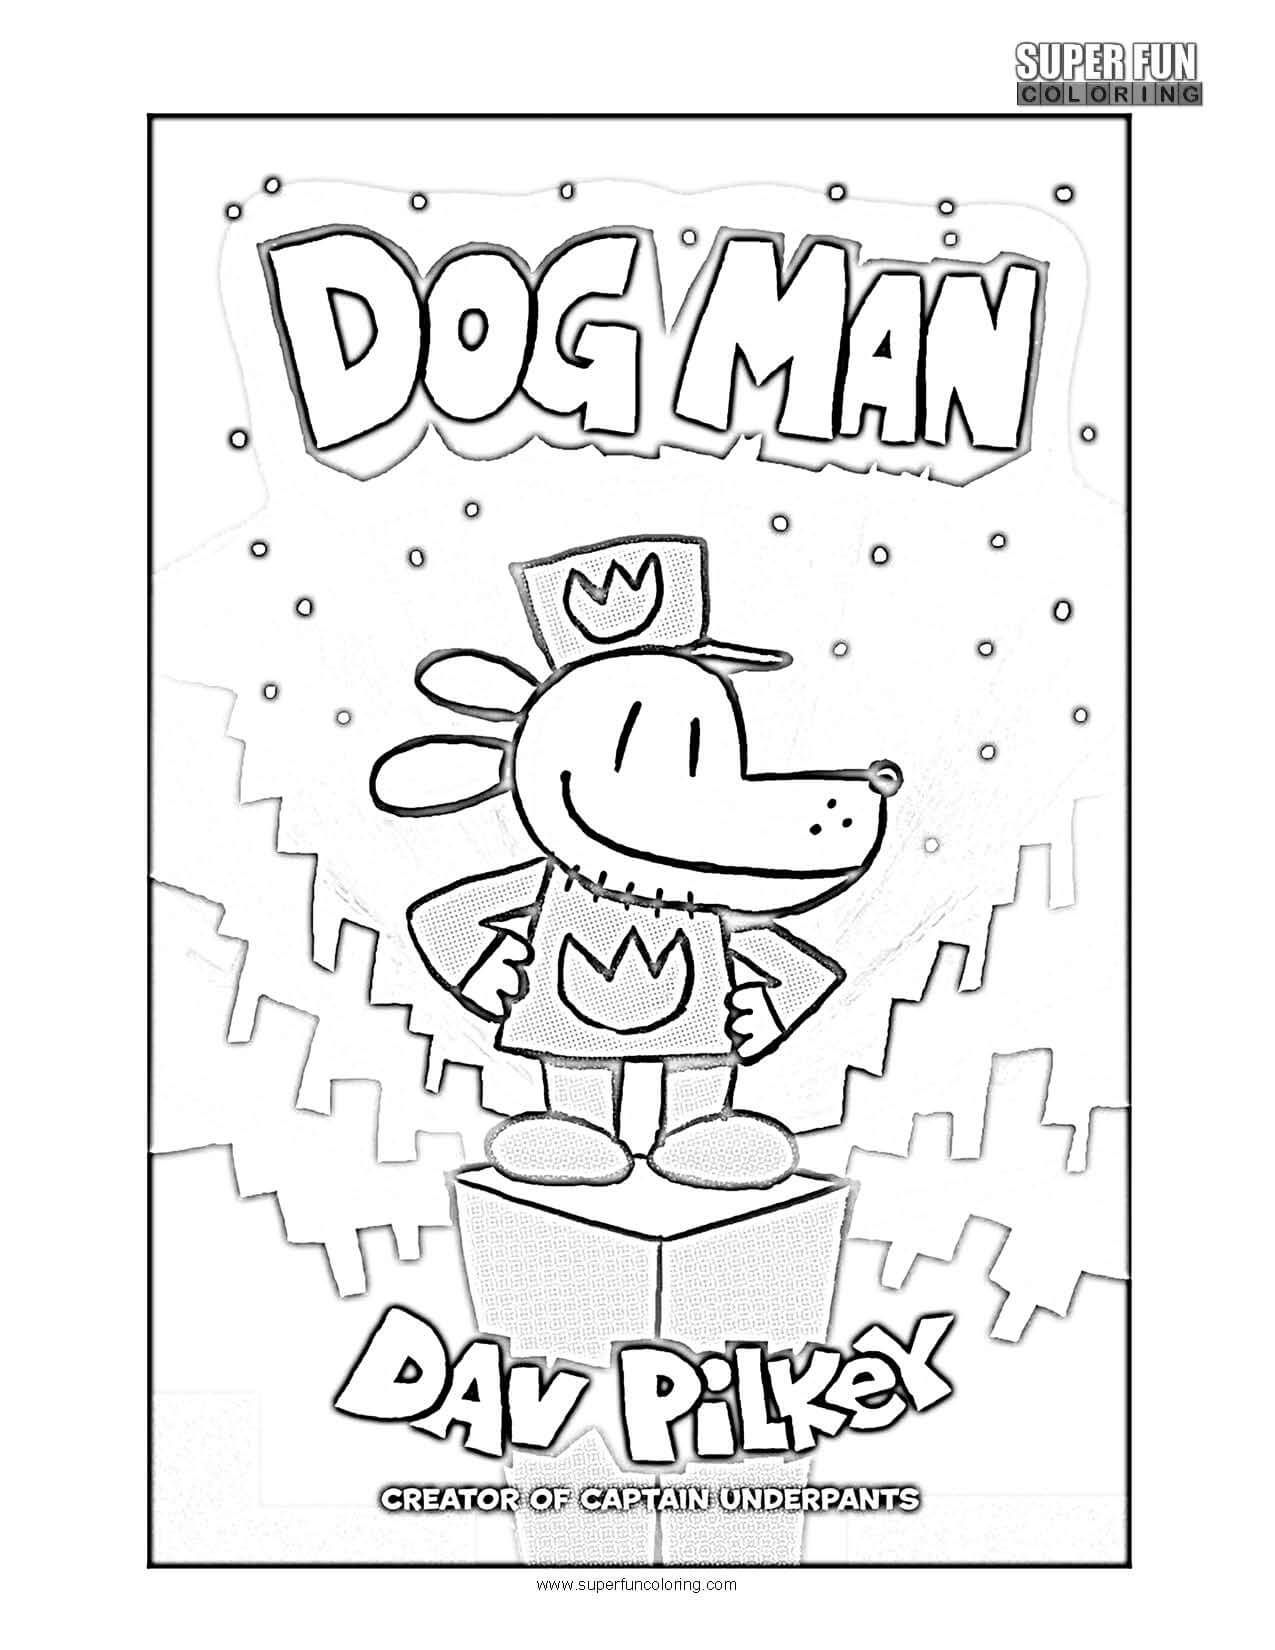 dog man coloring pages Book Cover Coloring Page  Dogman | Super Fun Coloring Pages  dog man coloring pages